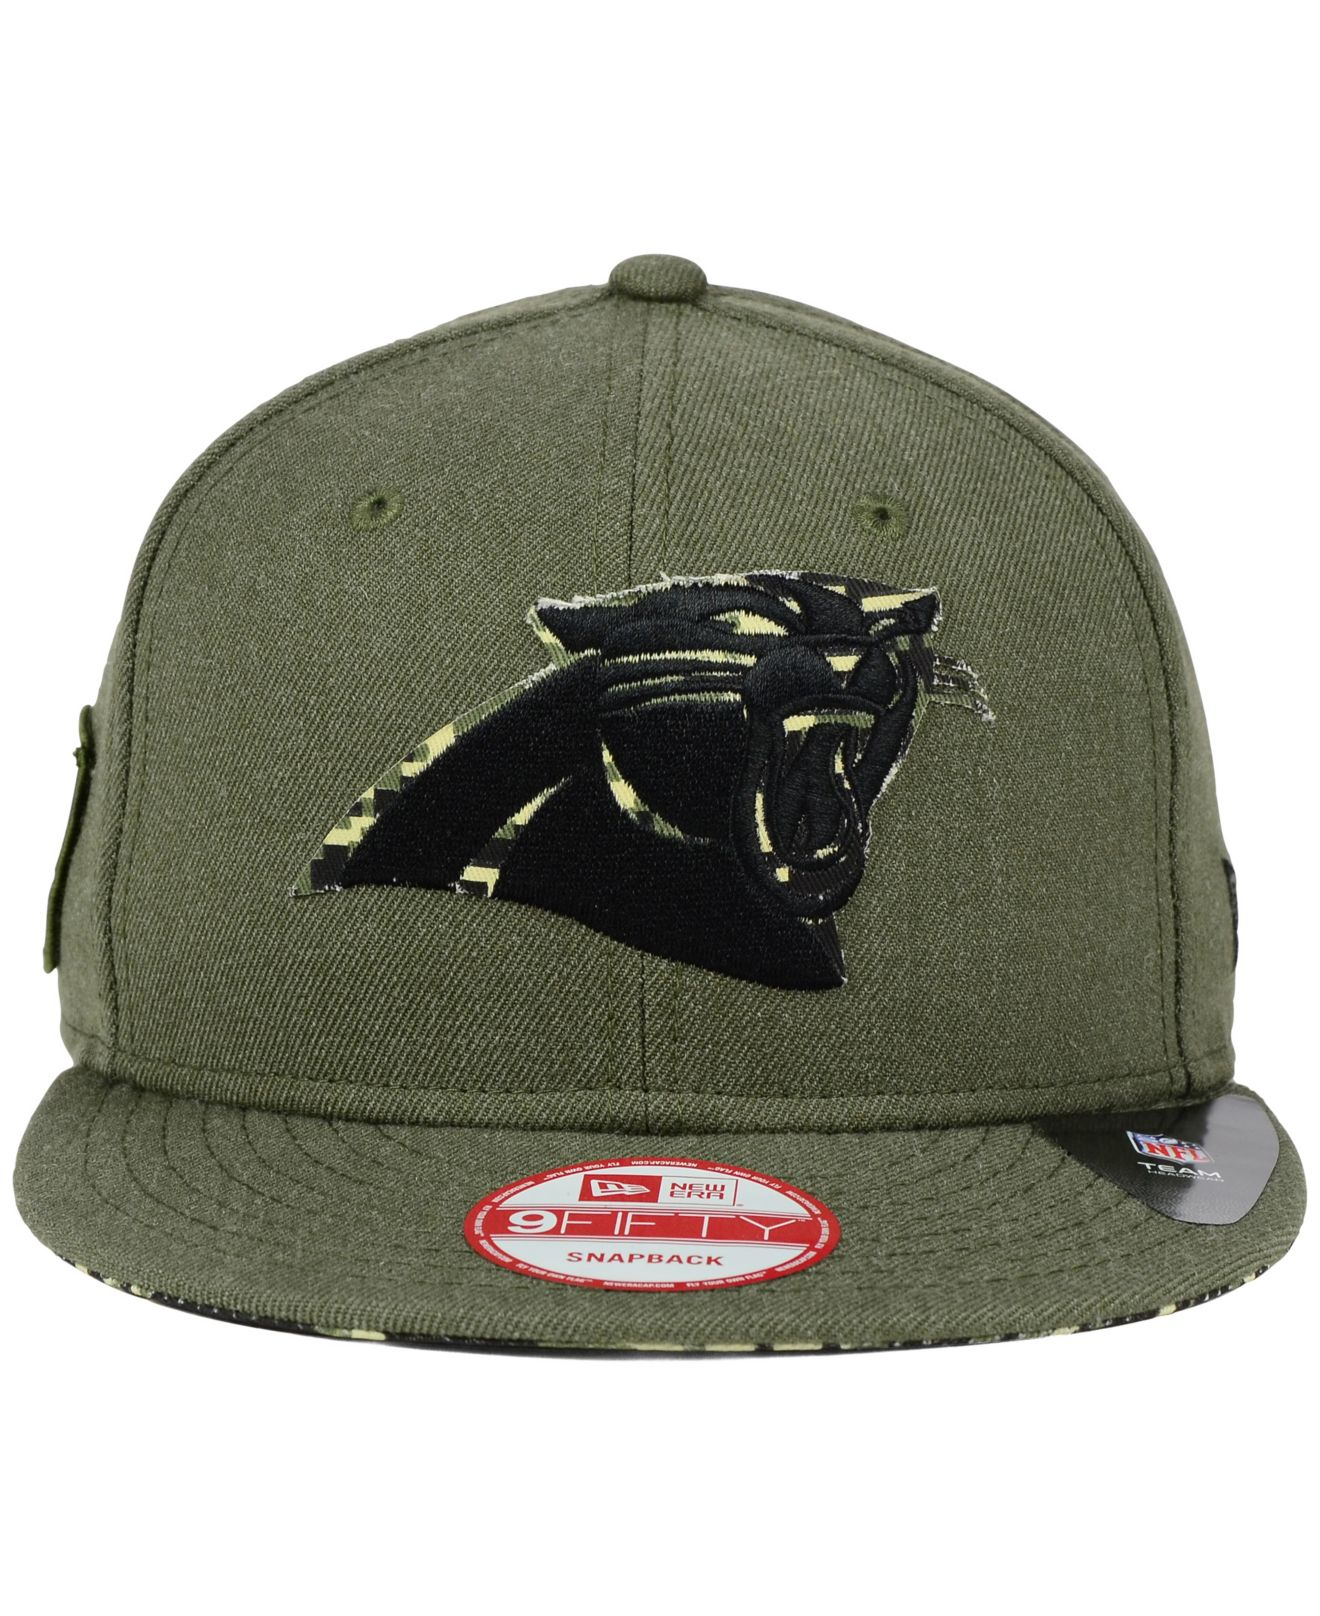 Lyst - KTZ Carolina Panthers Camo 9fifty Snapback Cap in Green for Men ec84295dc